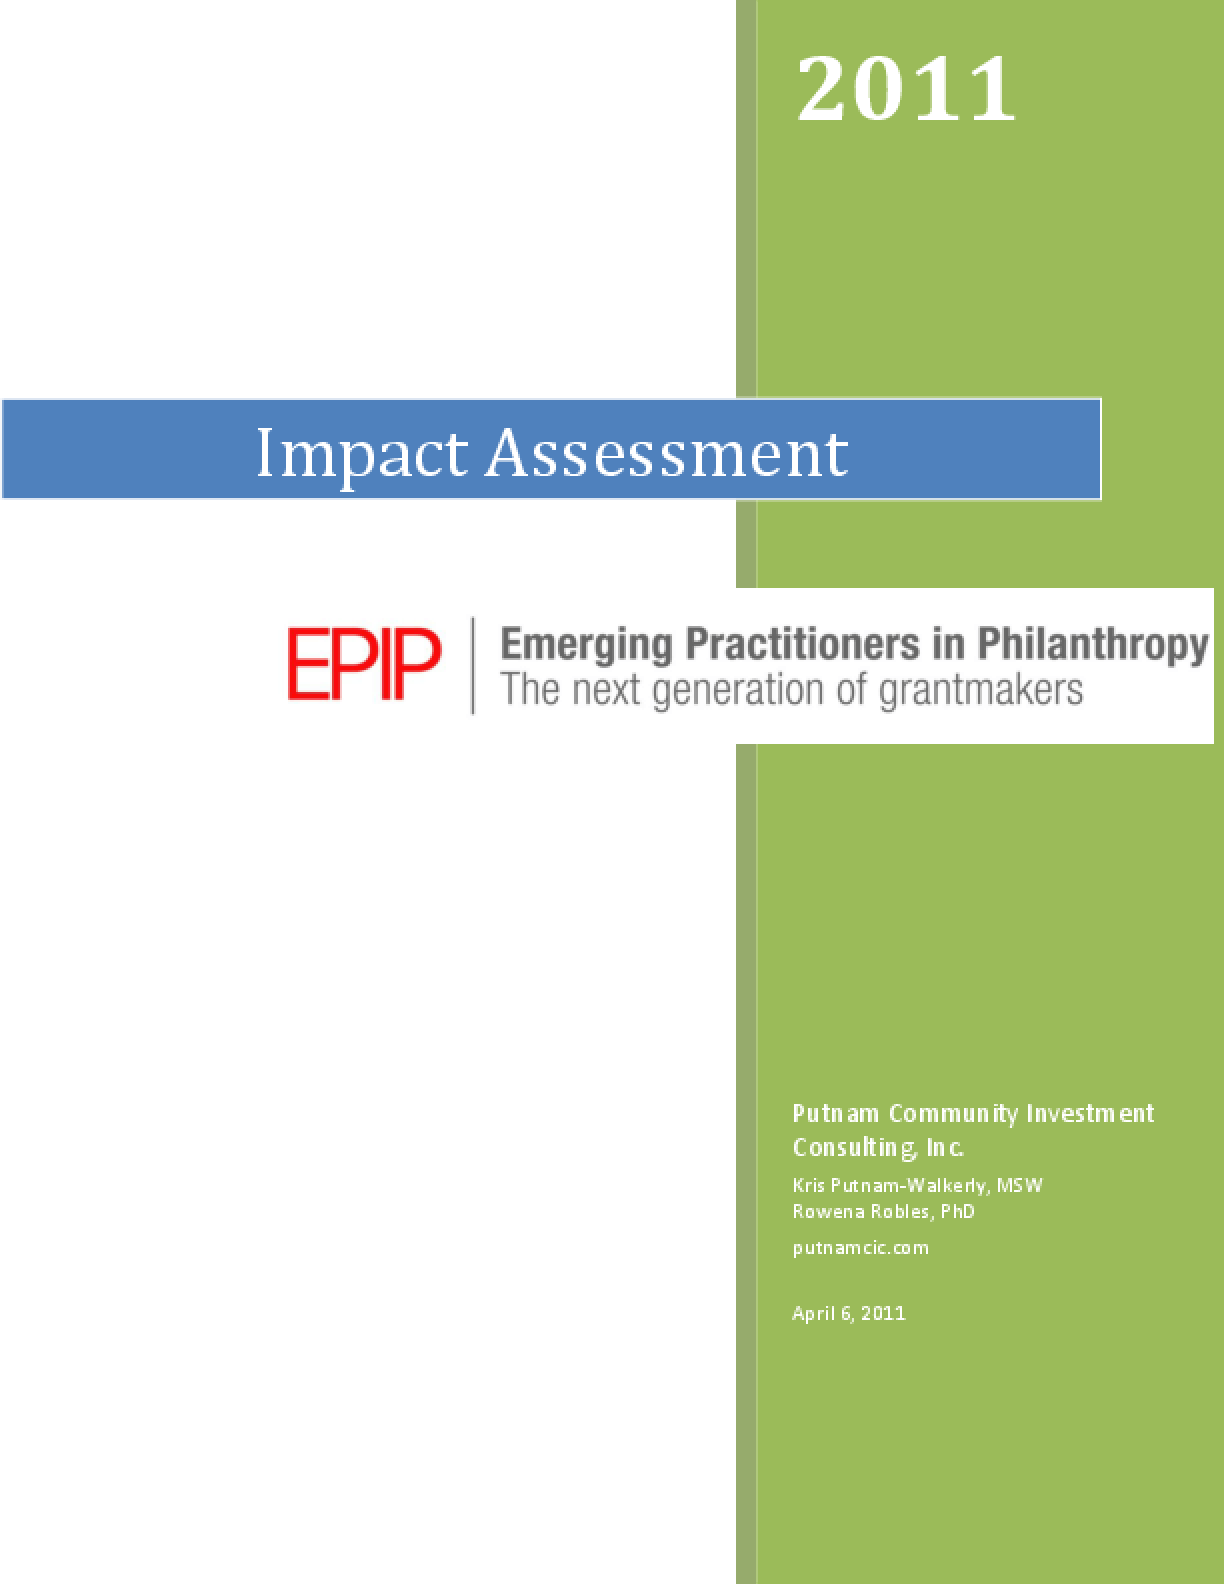 Impact Assessment: Emerging Practitioners in Philanthropy